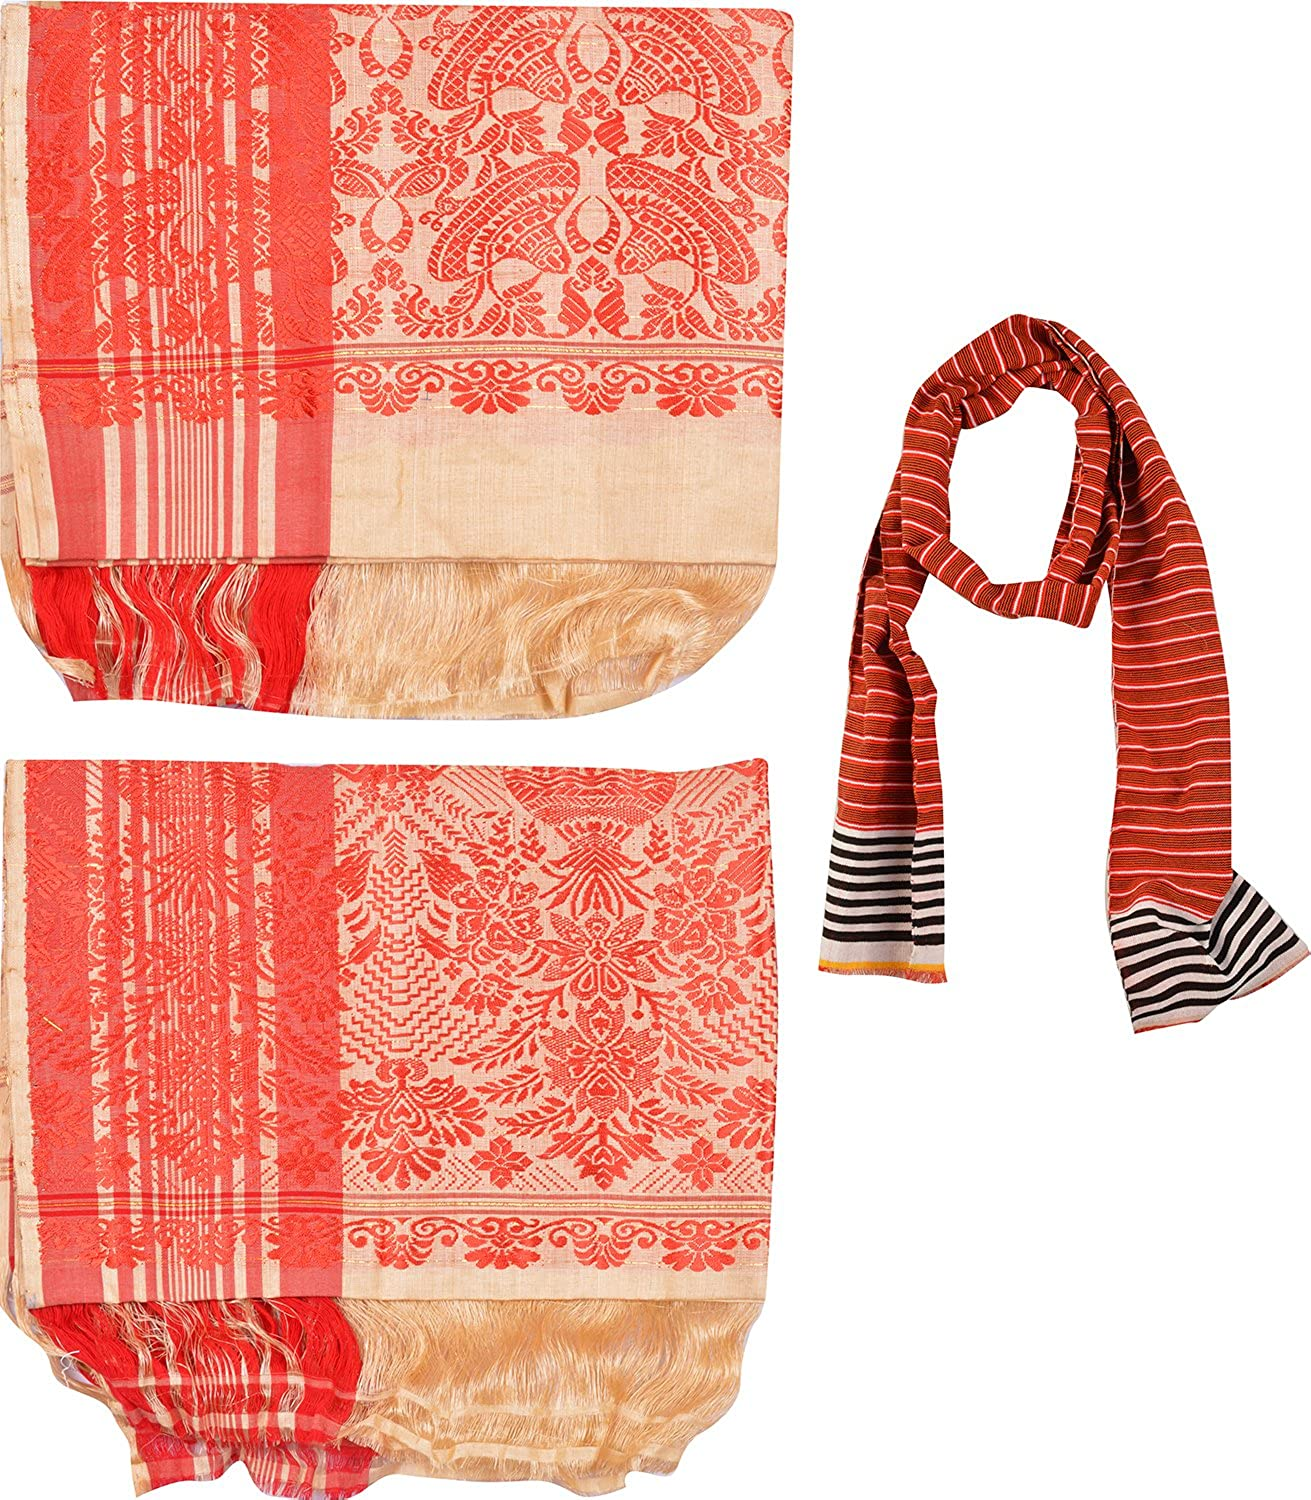 Muga Gamusa & Pohtuv, Adult Scarf Combo of 3 (Multi-Coloured)